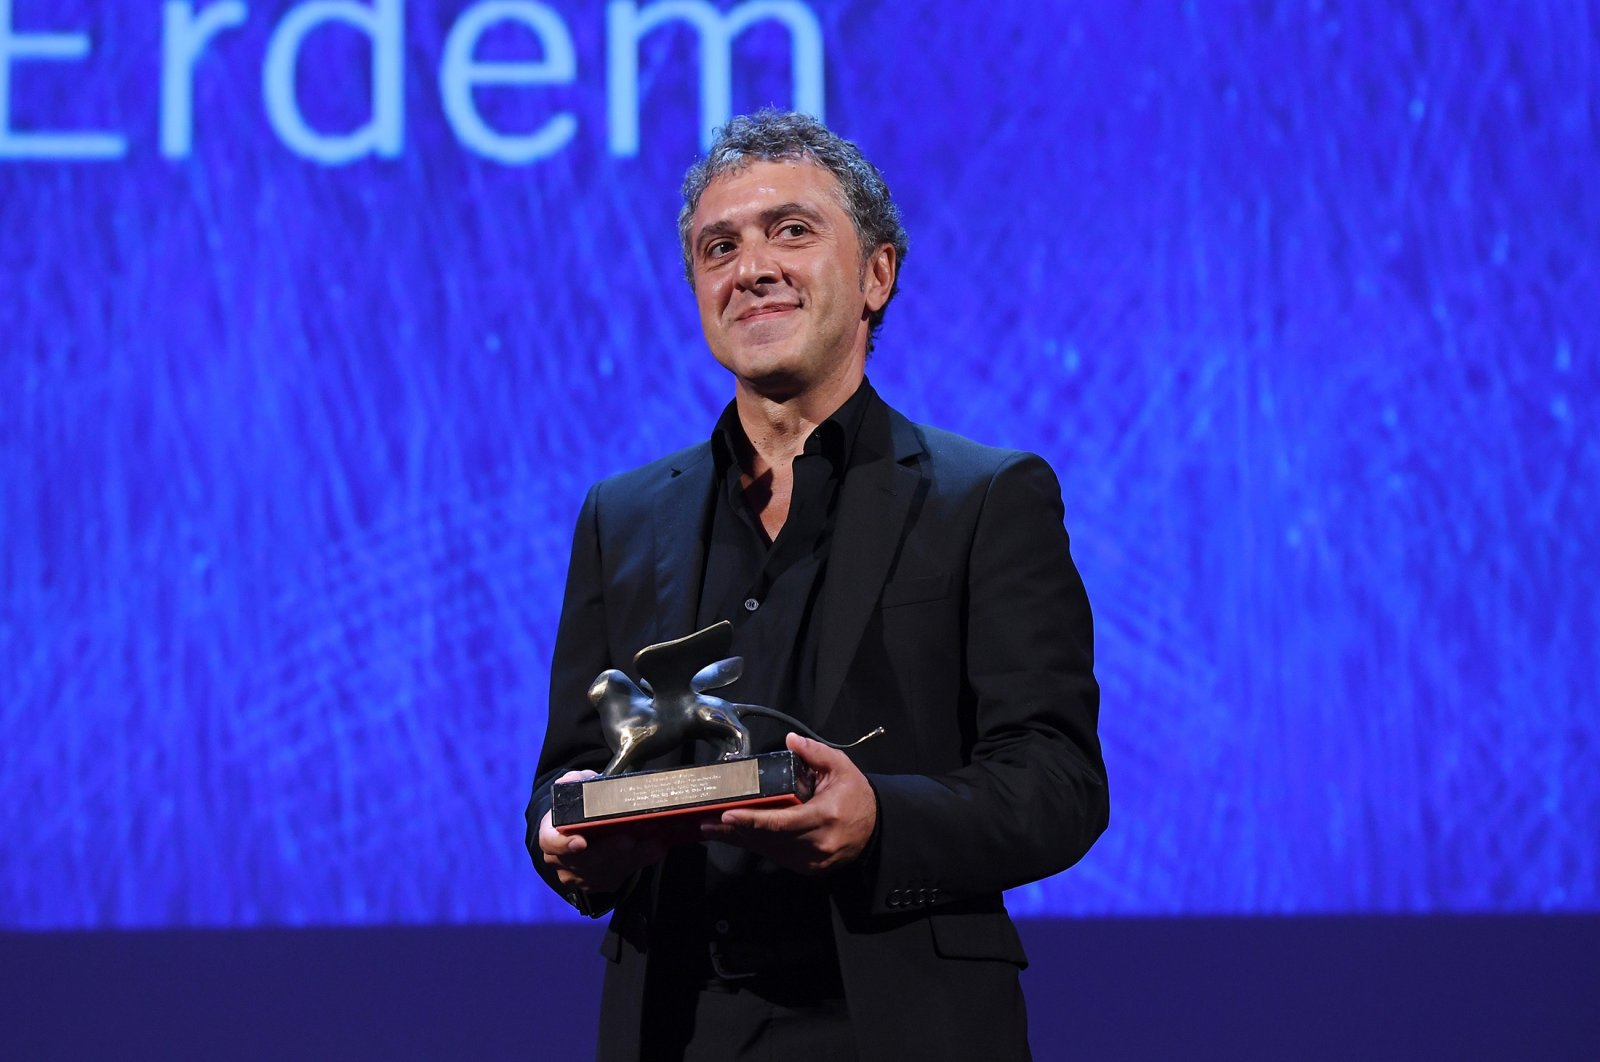 """Director Reha Erdem poses with the Special Orizzonti Jury Prize for his movie """"Koca Dünya"""" (""""Big Big World"""") during the closing ceremony of the 73rd Venice Film Festival at Sala Grande on Sept. 10, 2016, in Venice, Italy.  (Getty Images)"""